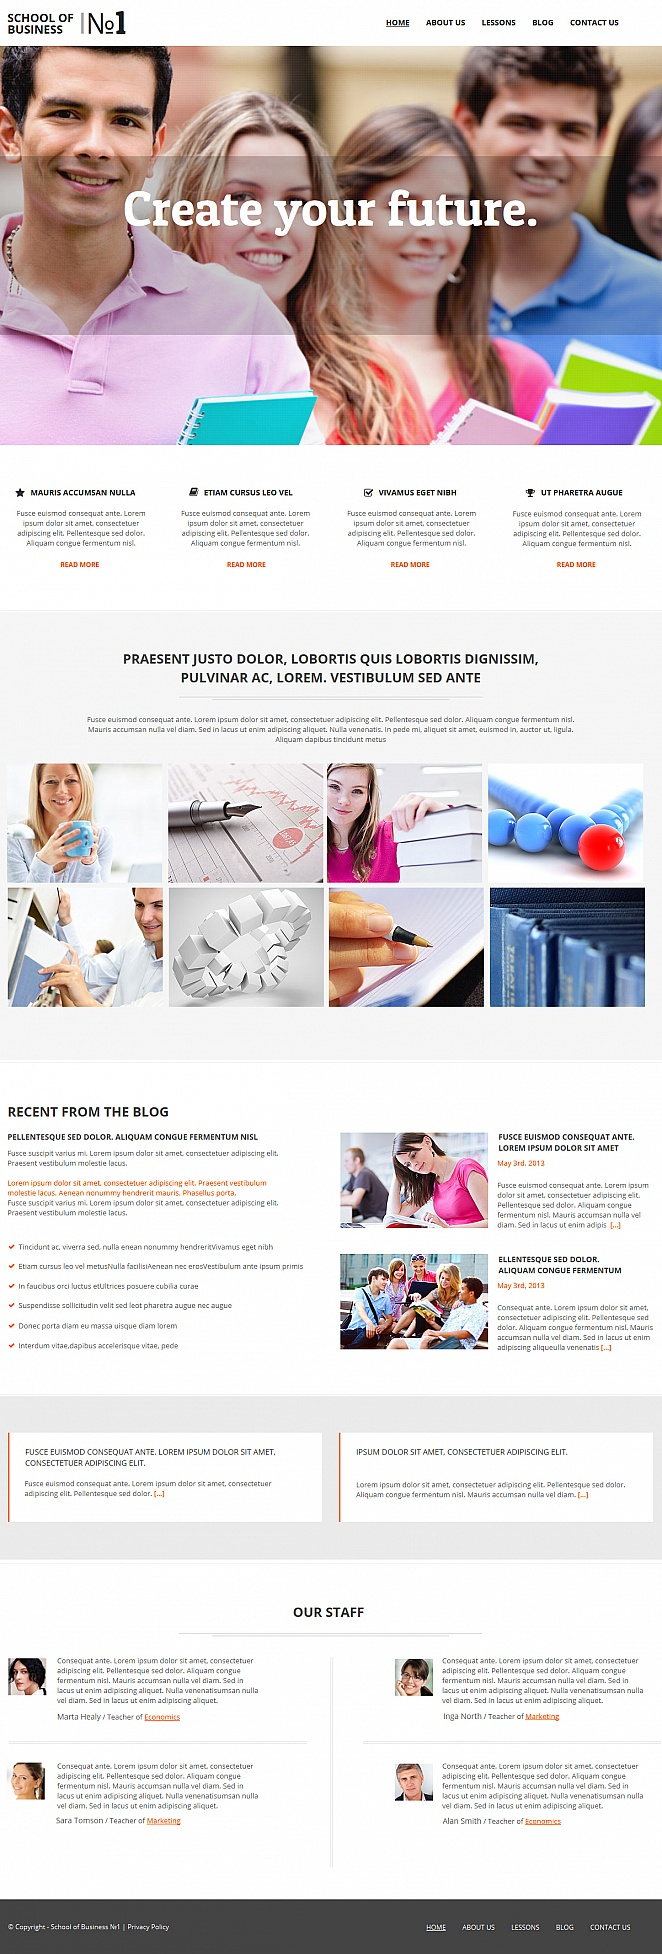 Business School Website Template with Drop-Down Menu - image